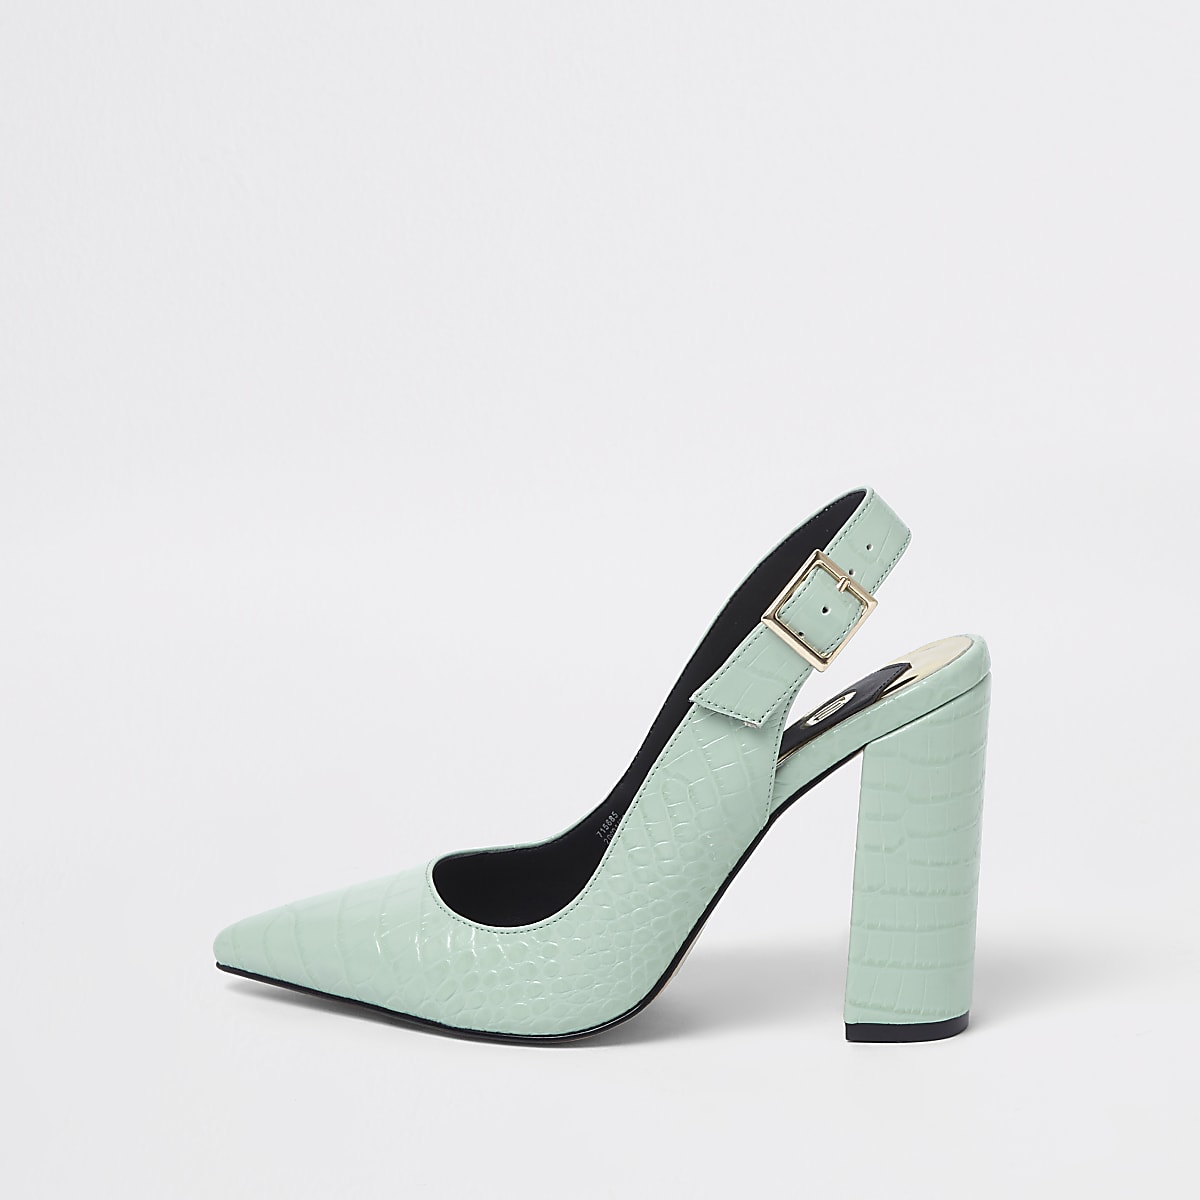 be1556e97 Green croc block heel sling back court shoes - Shoes - Shoes   Boots - women